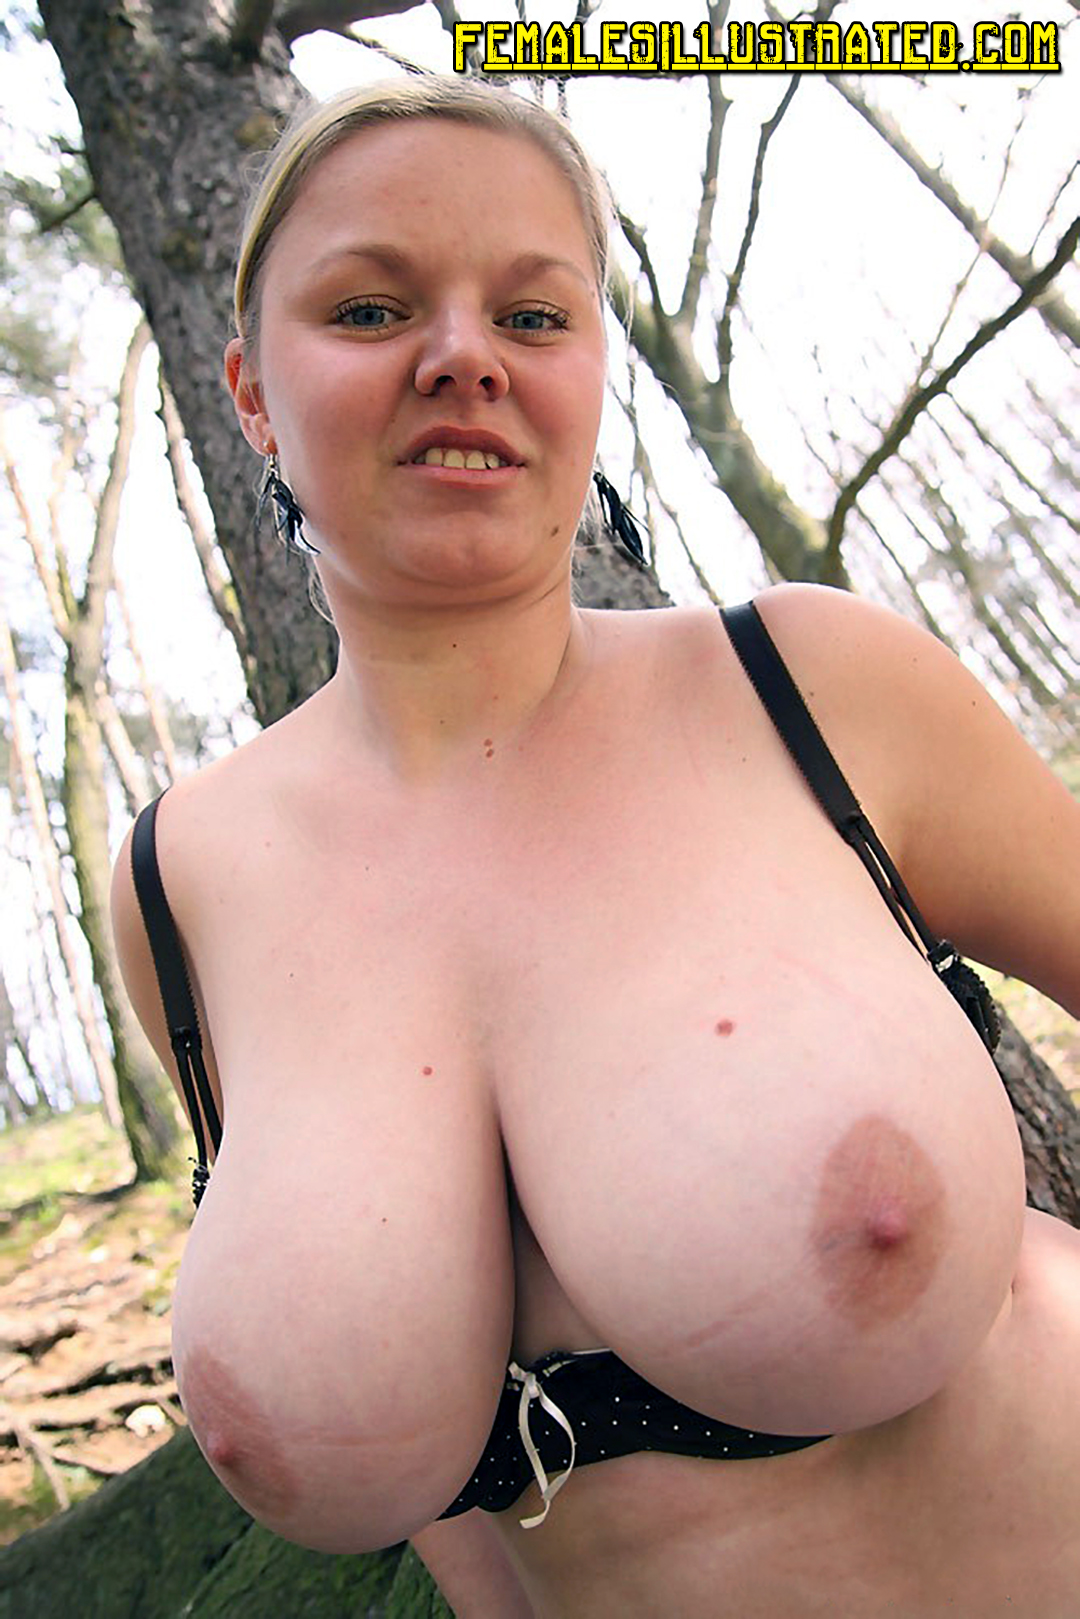 Amateur Teen Show Huge Boobs